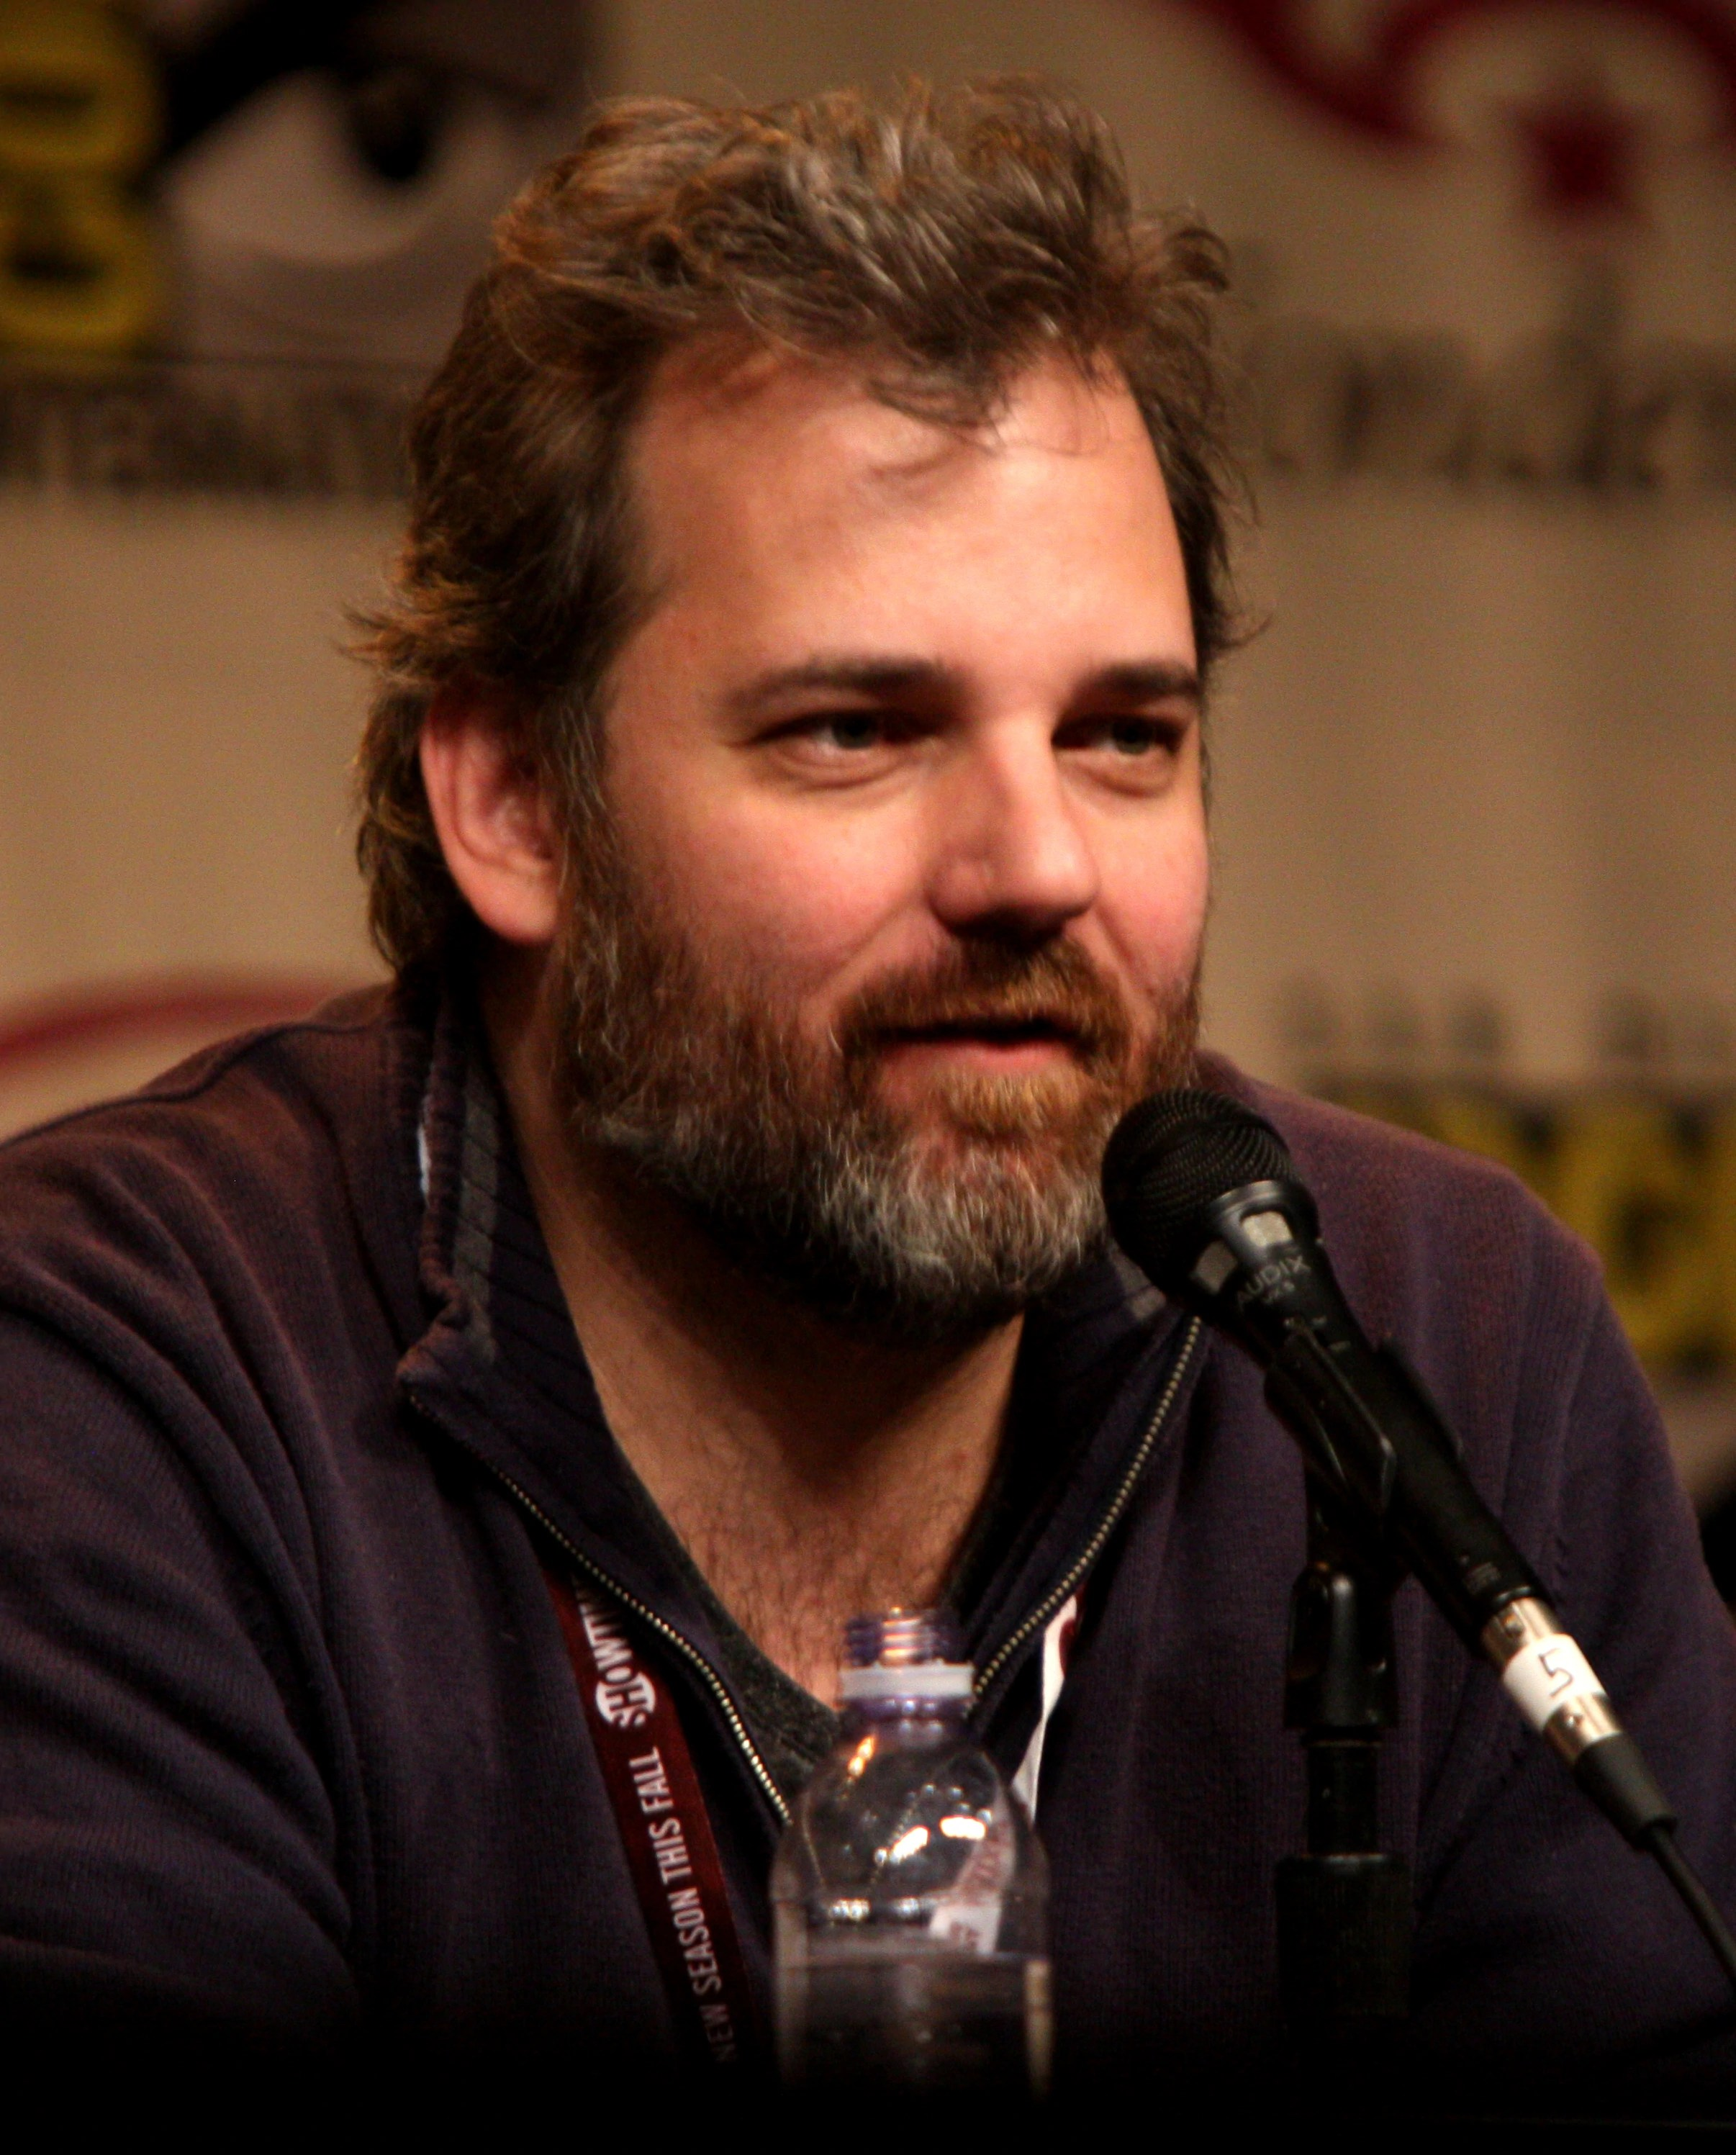 Character wisdom from comedy writer Dan Harmon on characters